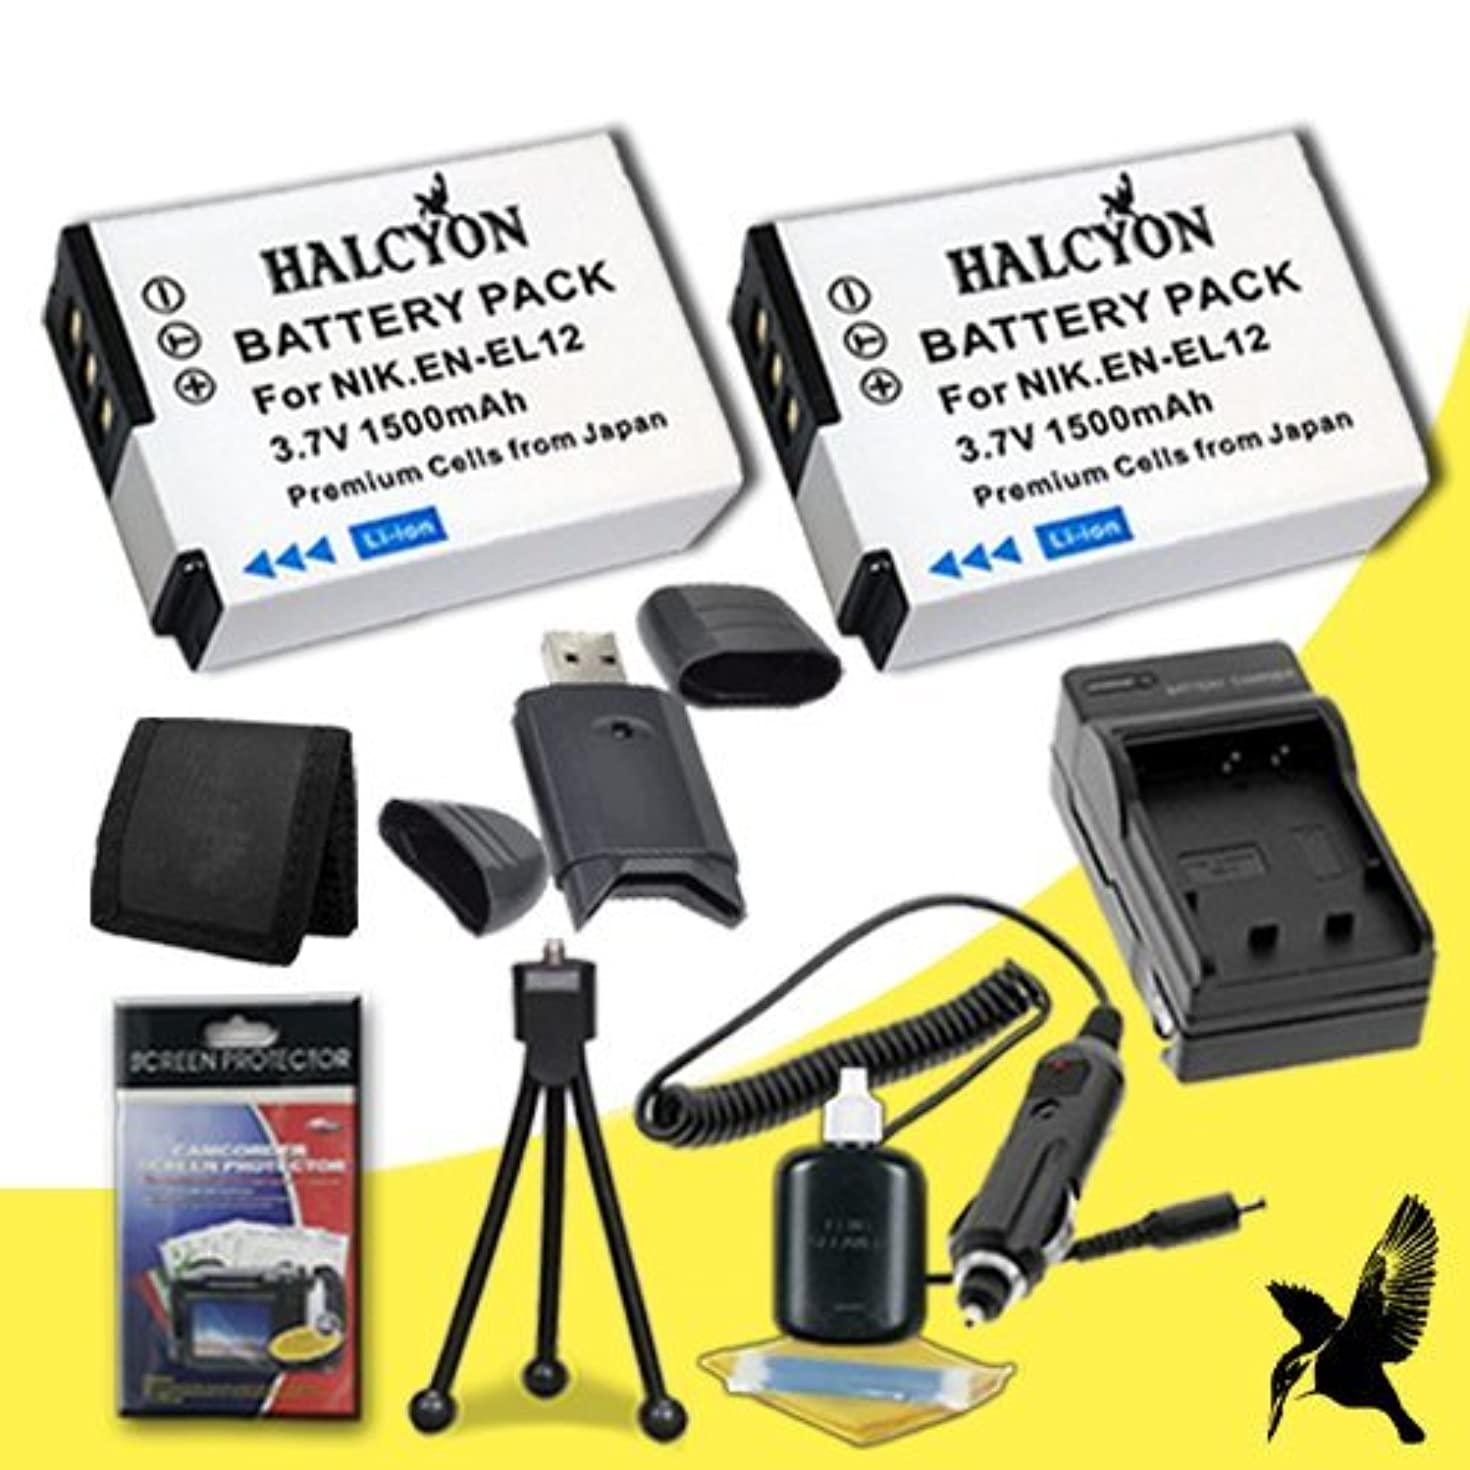 Two Halcyon 1500 mAH Lithium Ion Replacement EN-EL12 Battery and Charger Kit + Memory Card Wallet + SDHC Card USB Reader + Deluxe Starter Kit for Nikon Coolpix S800c, AW100, AW100s, P300, P310, S70, S630, S640, S1000pj, S1100pj, S1200pj, S6000, S6100, S6150, S6200, S6300, S8000, S8100, S8200, S9100, S9300 Digital Cameras and Nikon EN-EL12